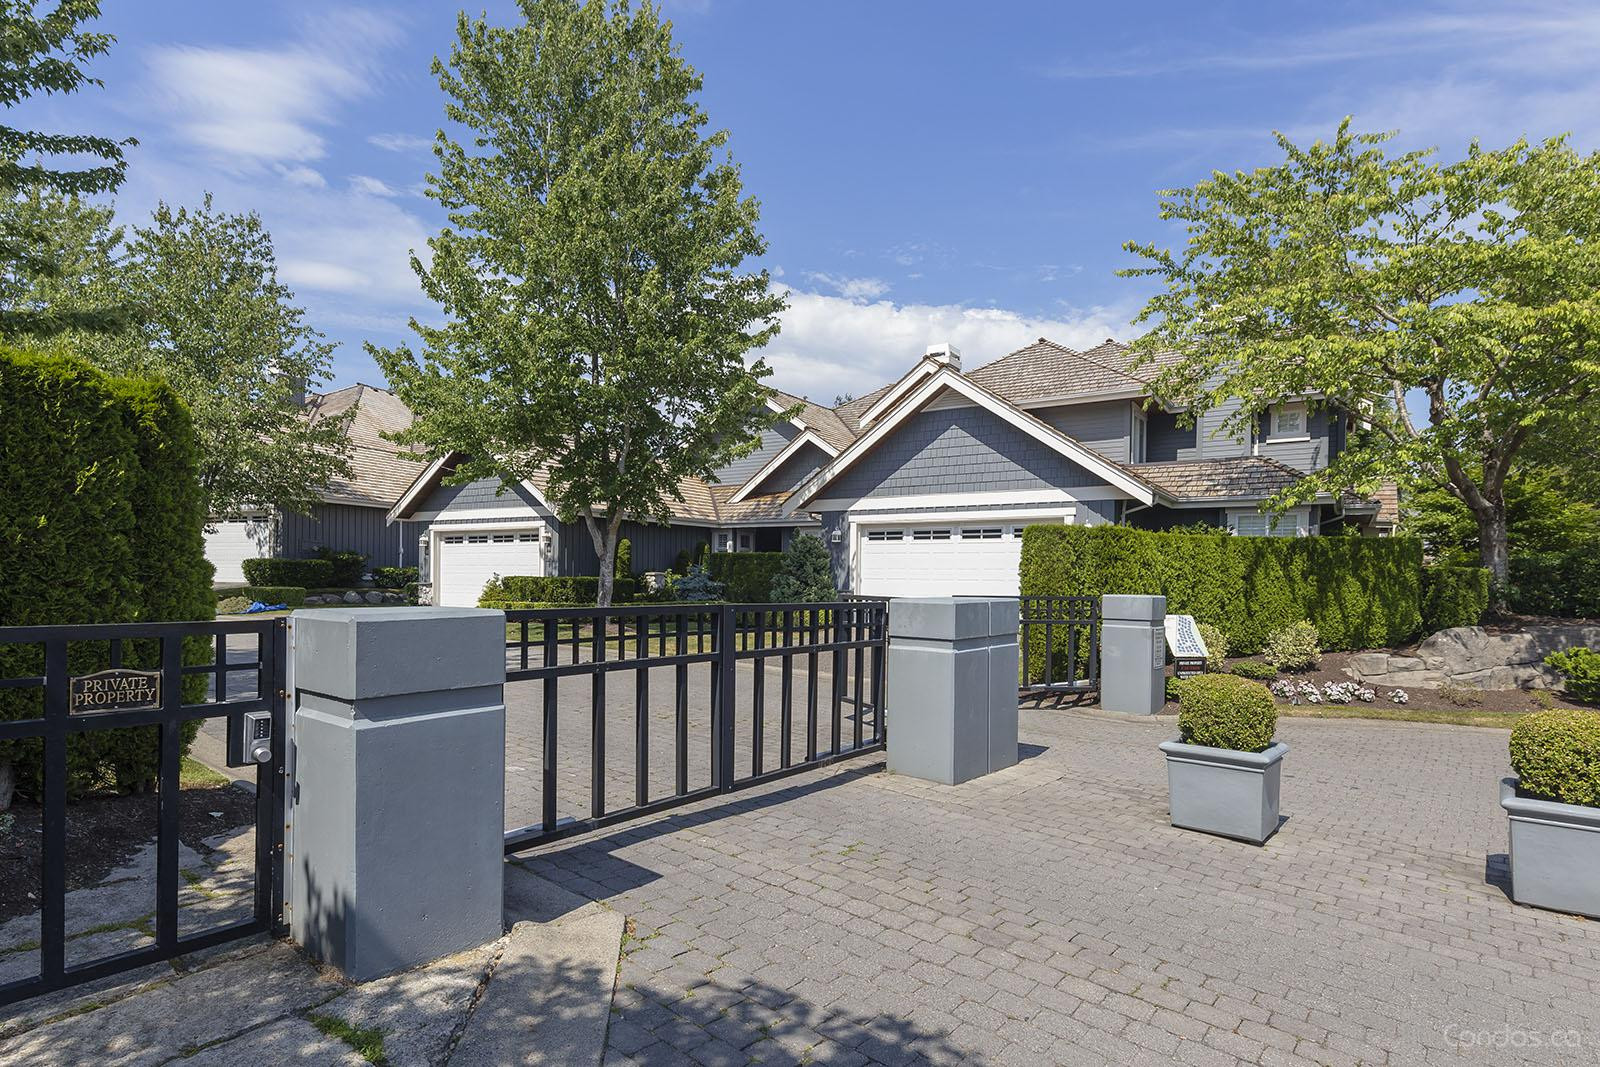 Wedgewood at 15715 34 Ave, Surrey 1